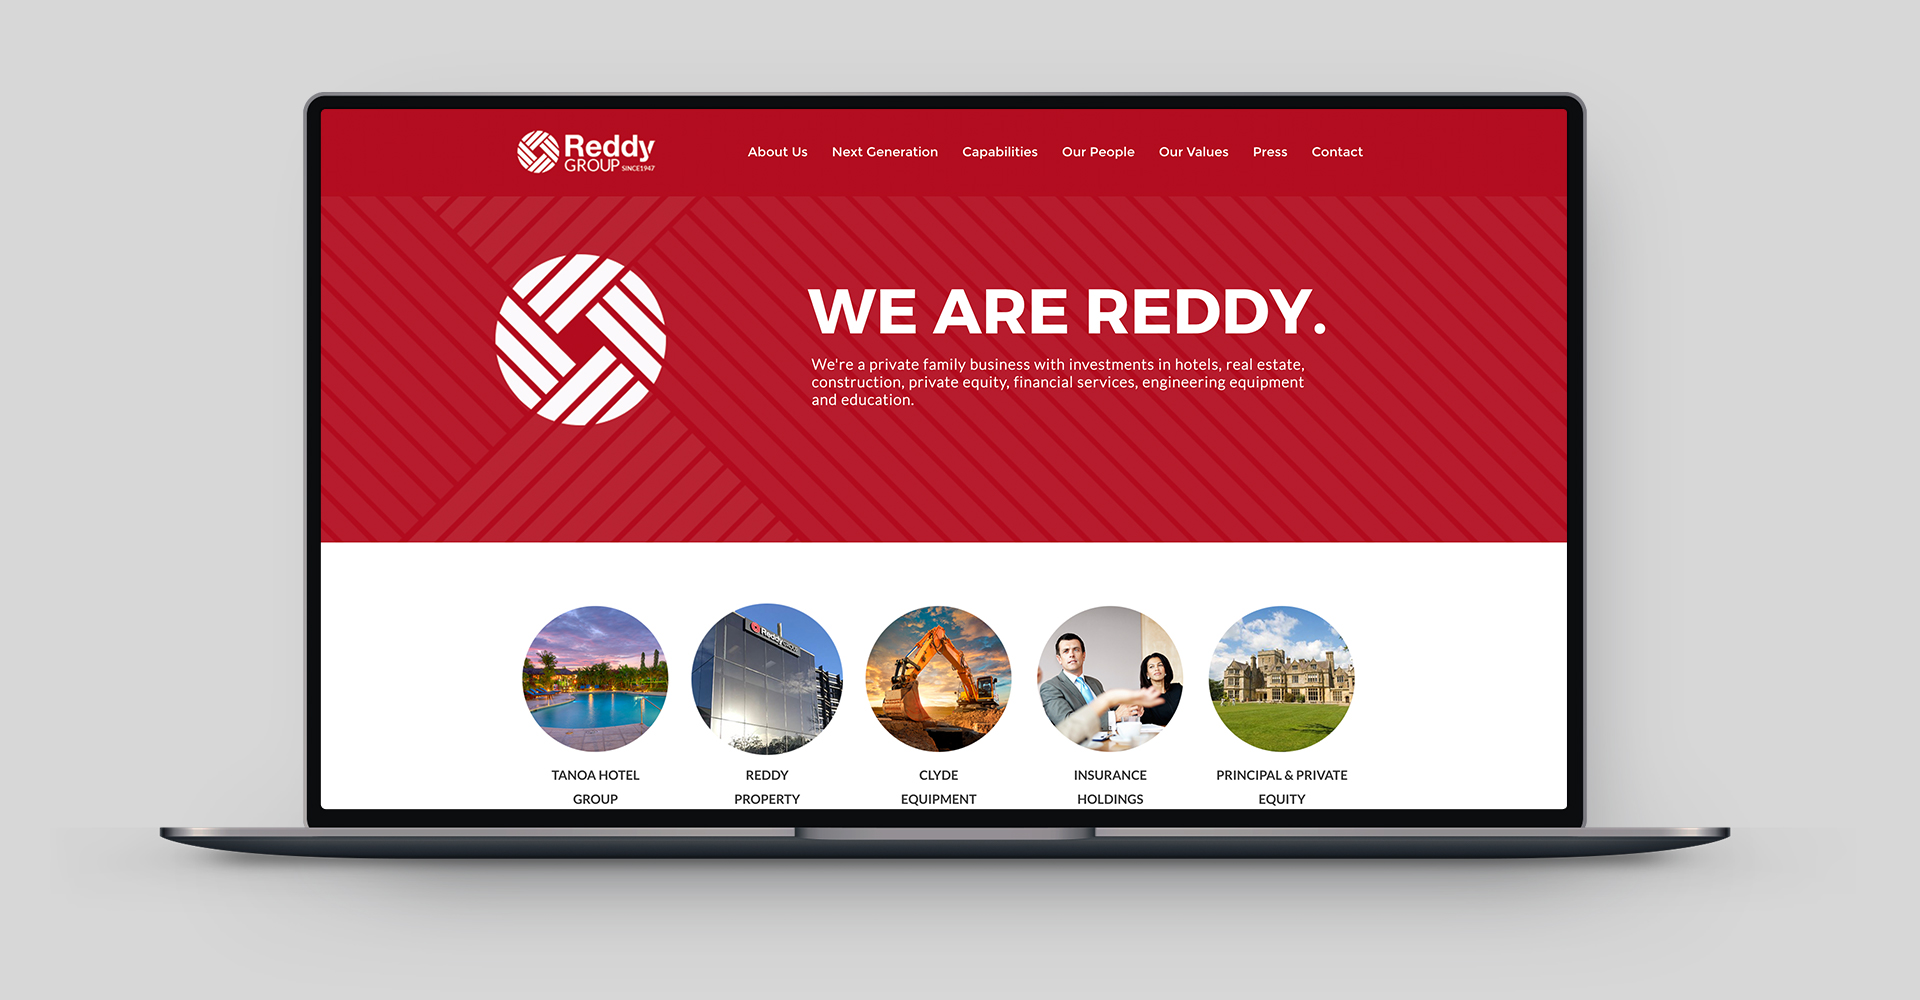 Reddy_group_website_design_digital_marketing_visual_communications_graphic_design_agency_redfire